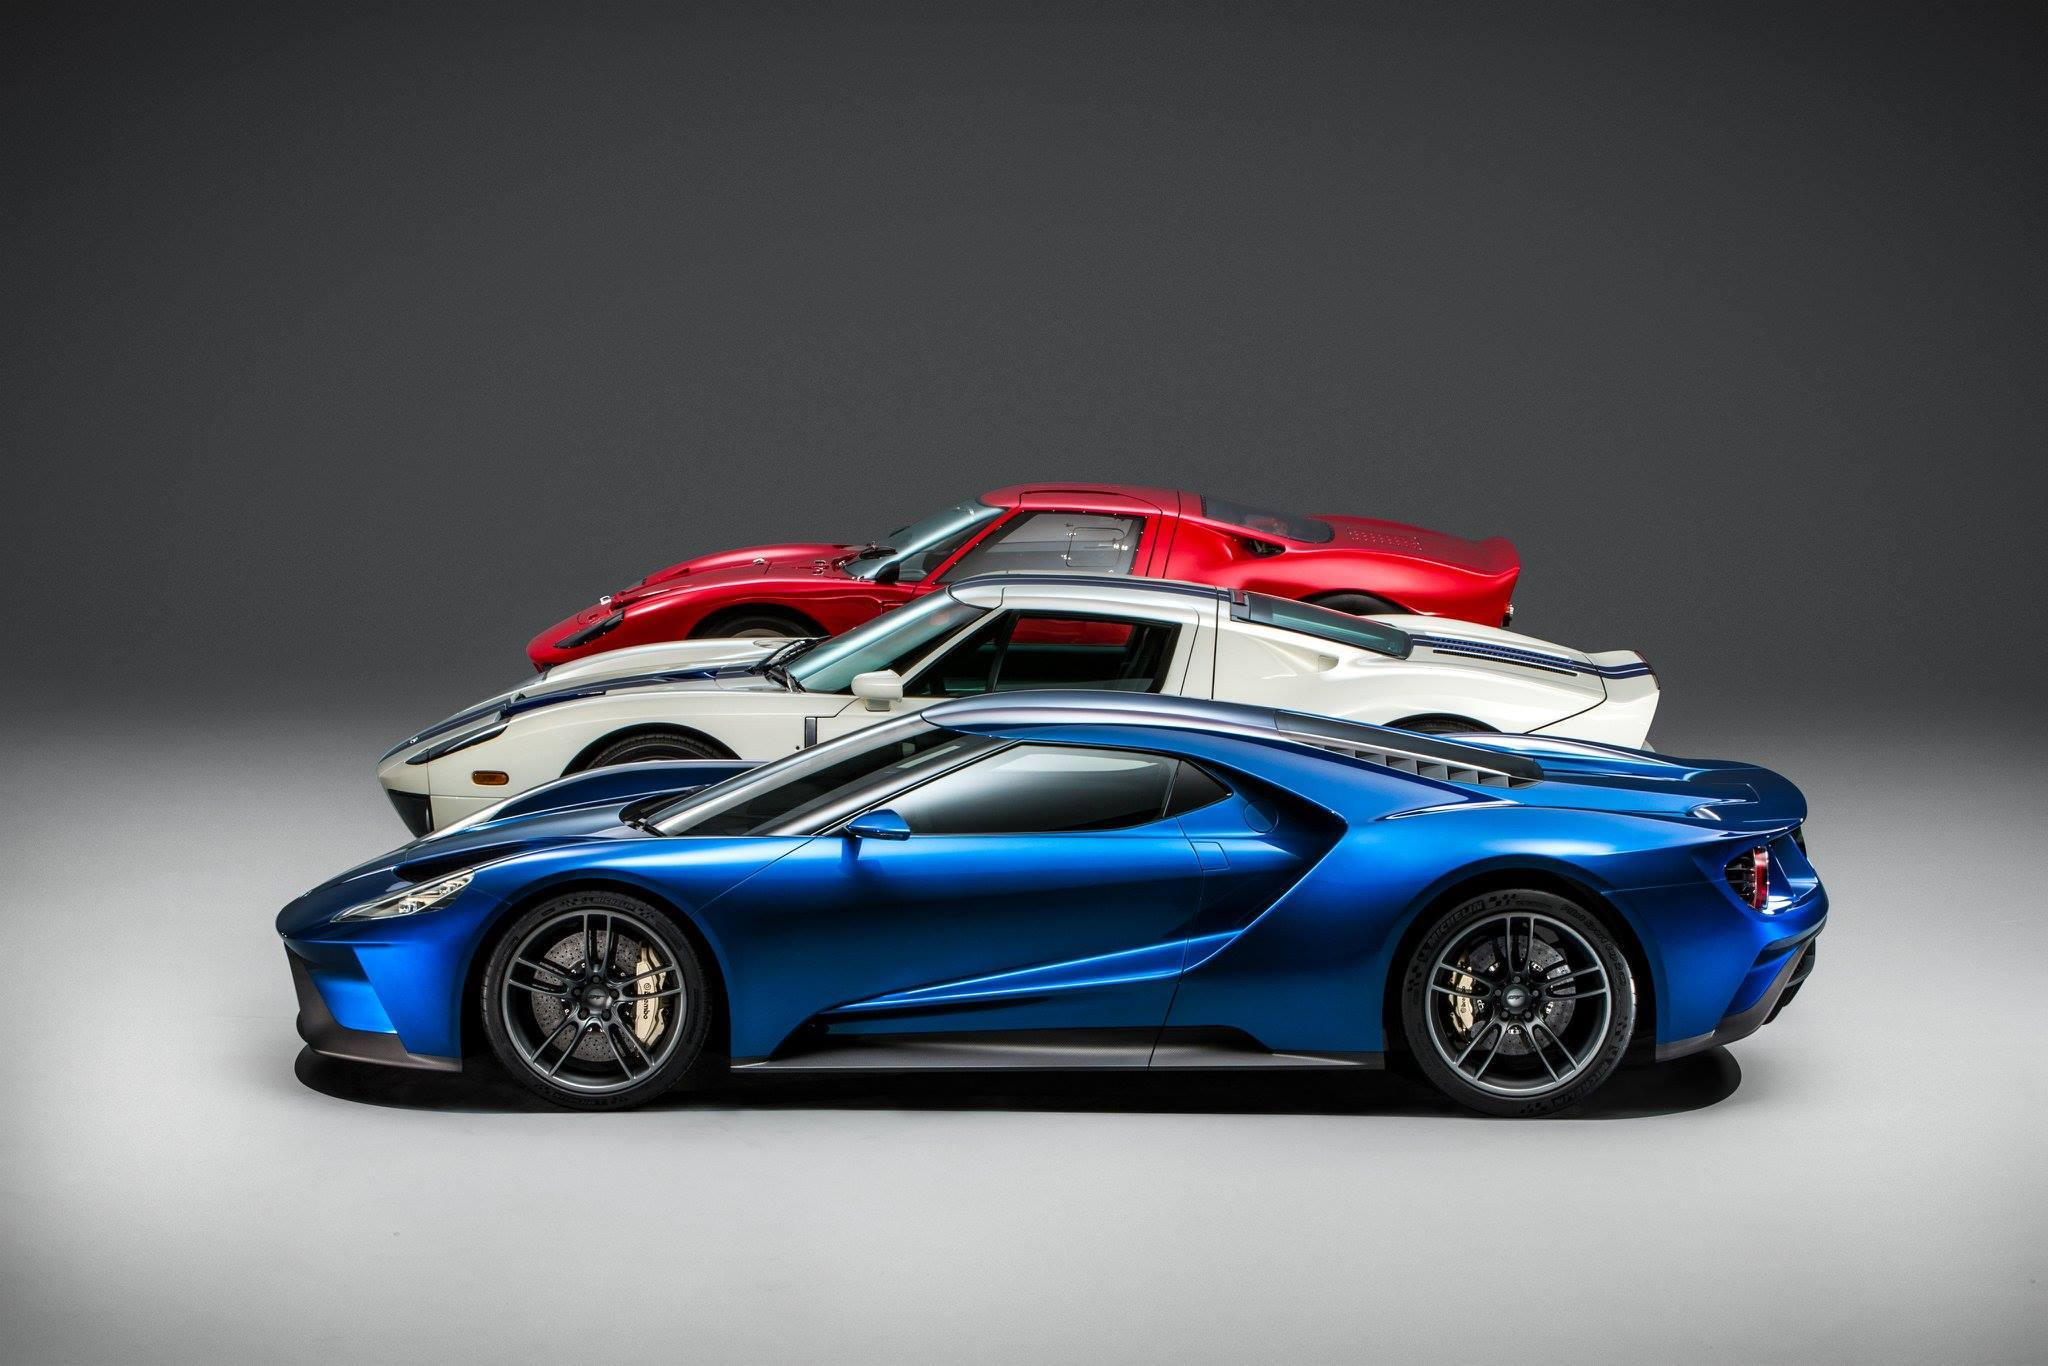 Im A Side Profile Guy A Nice Side Profile Makes Or Breaks A Supercar For Me The New Ford Gt Is Absolutely Too Hot For Me To Handle